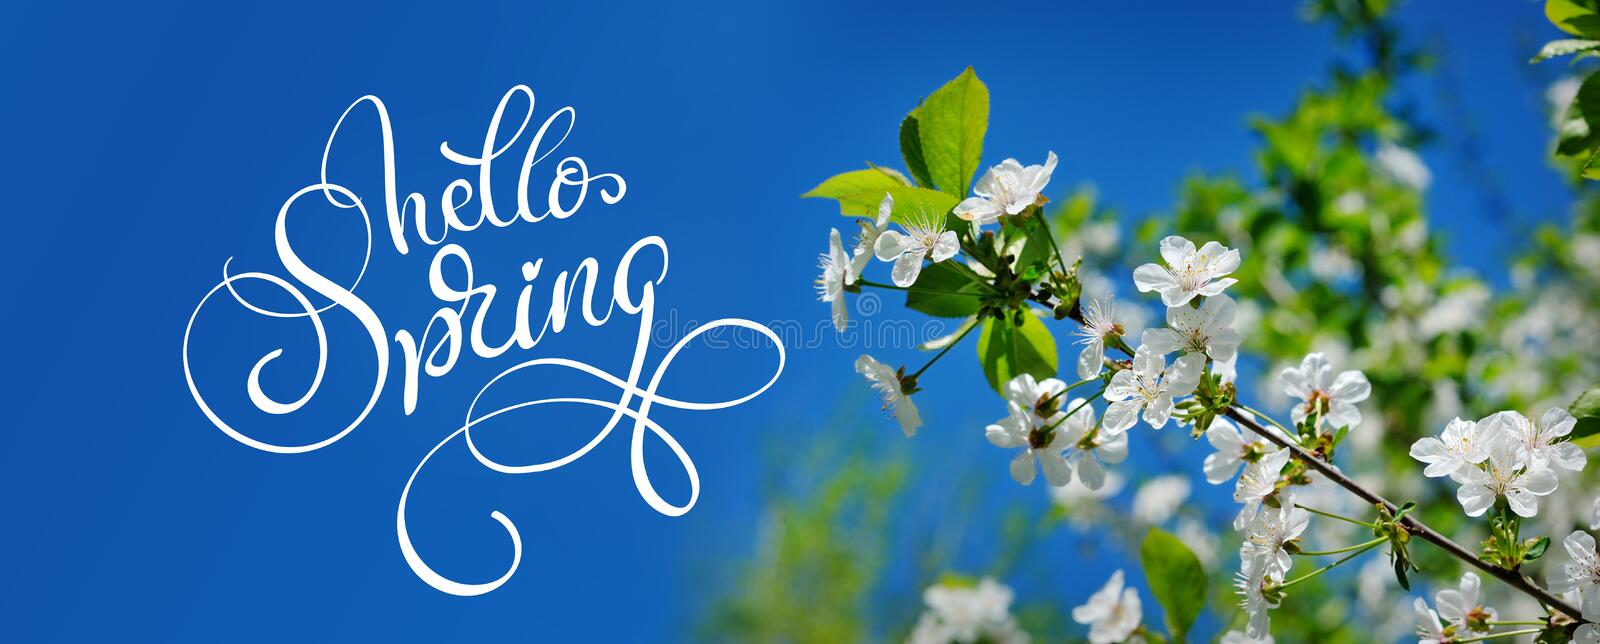 Beautiful blooming spring garden on a background of blue sky and text Hello Spring. Calligraphy lettering stock photos